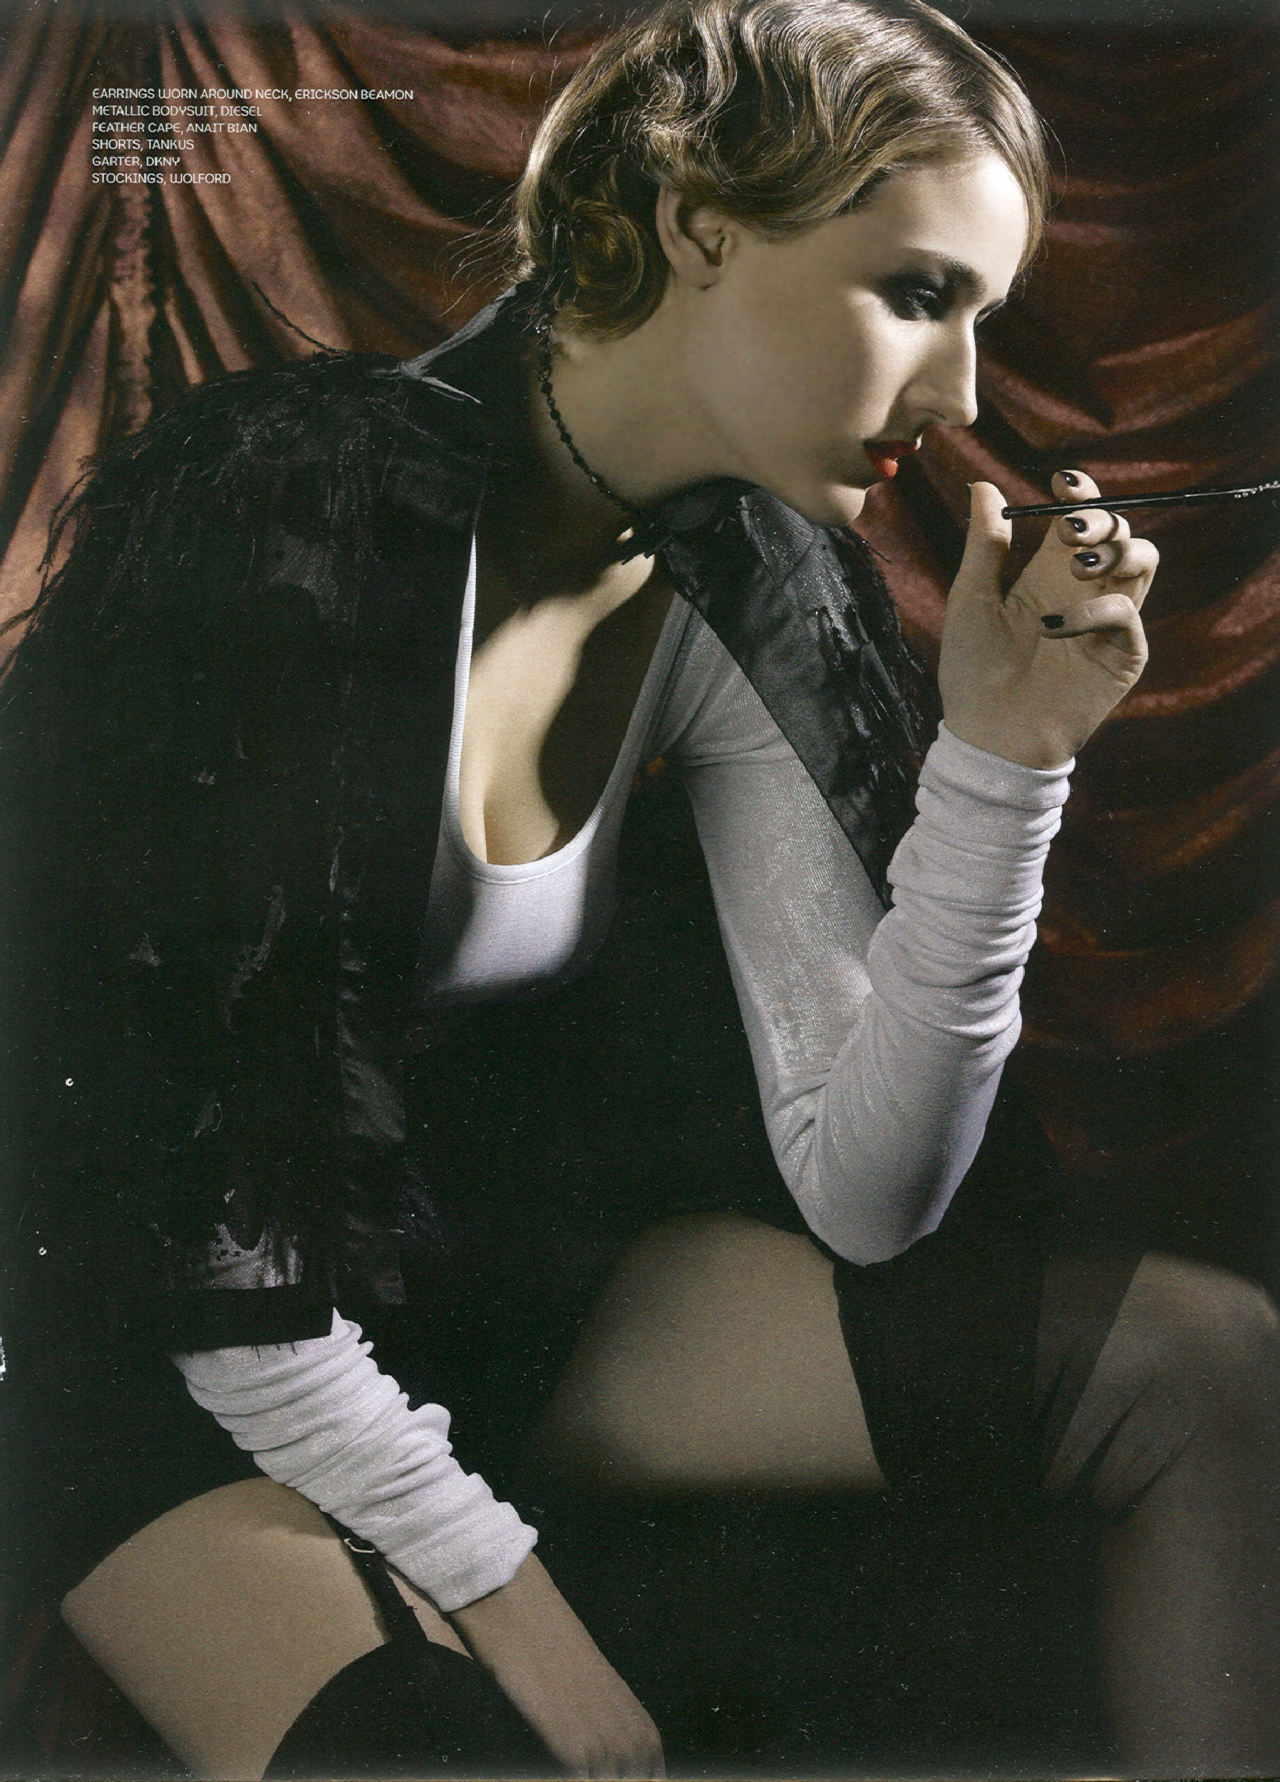 Leelee Sobieski Lush Spring 2008 Magazine (scan and photoshoot)